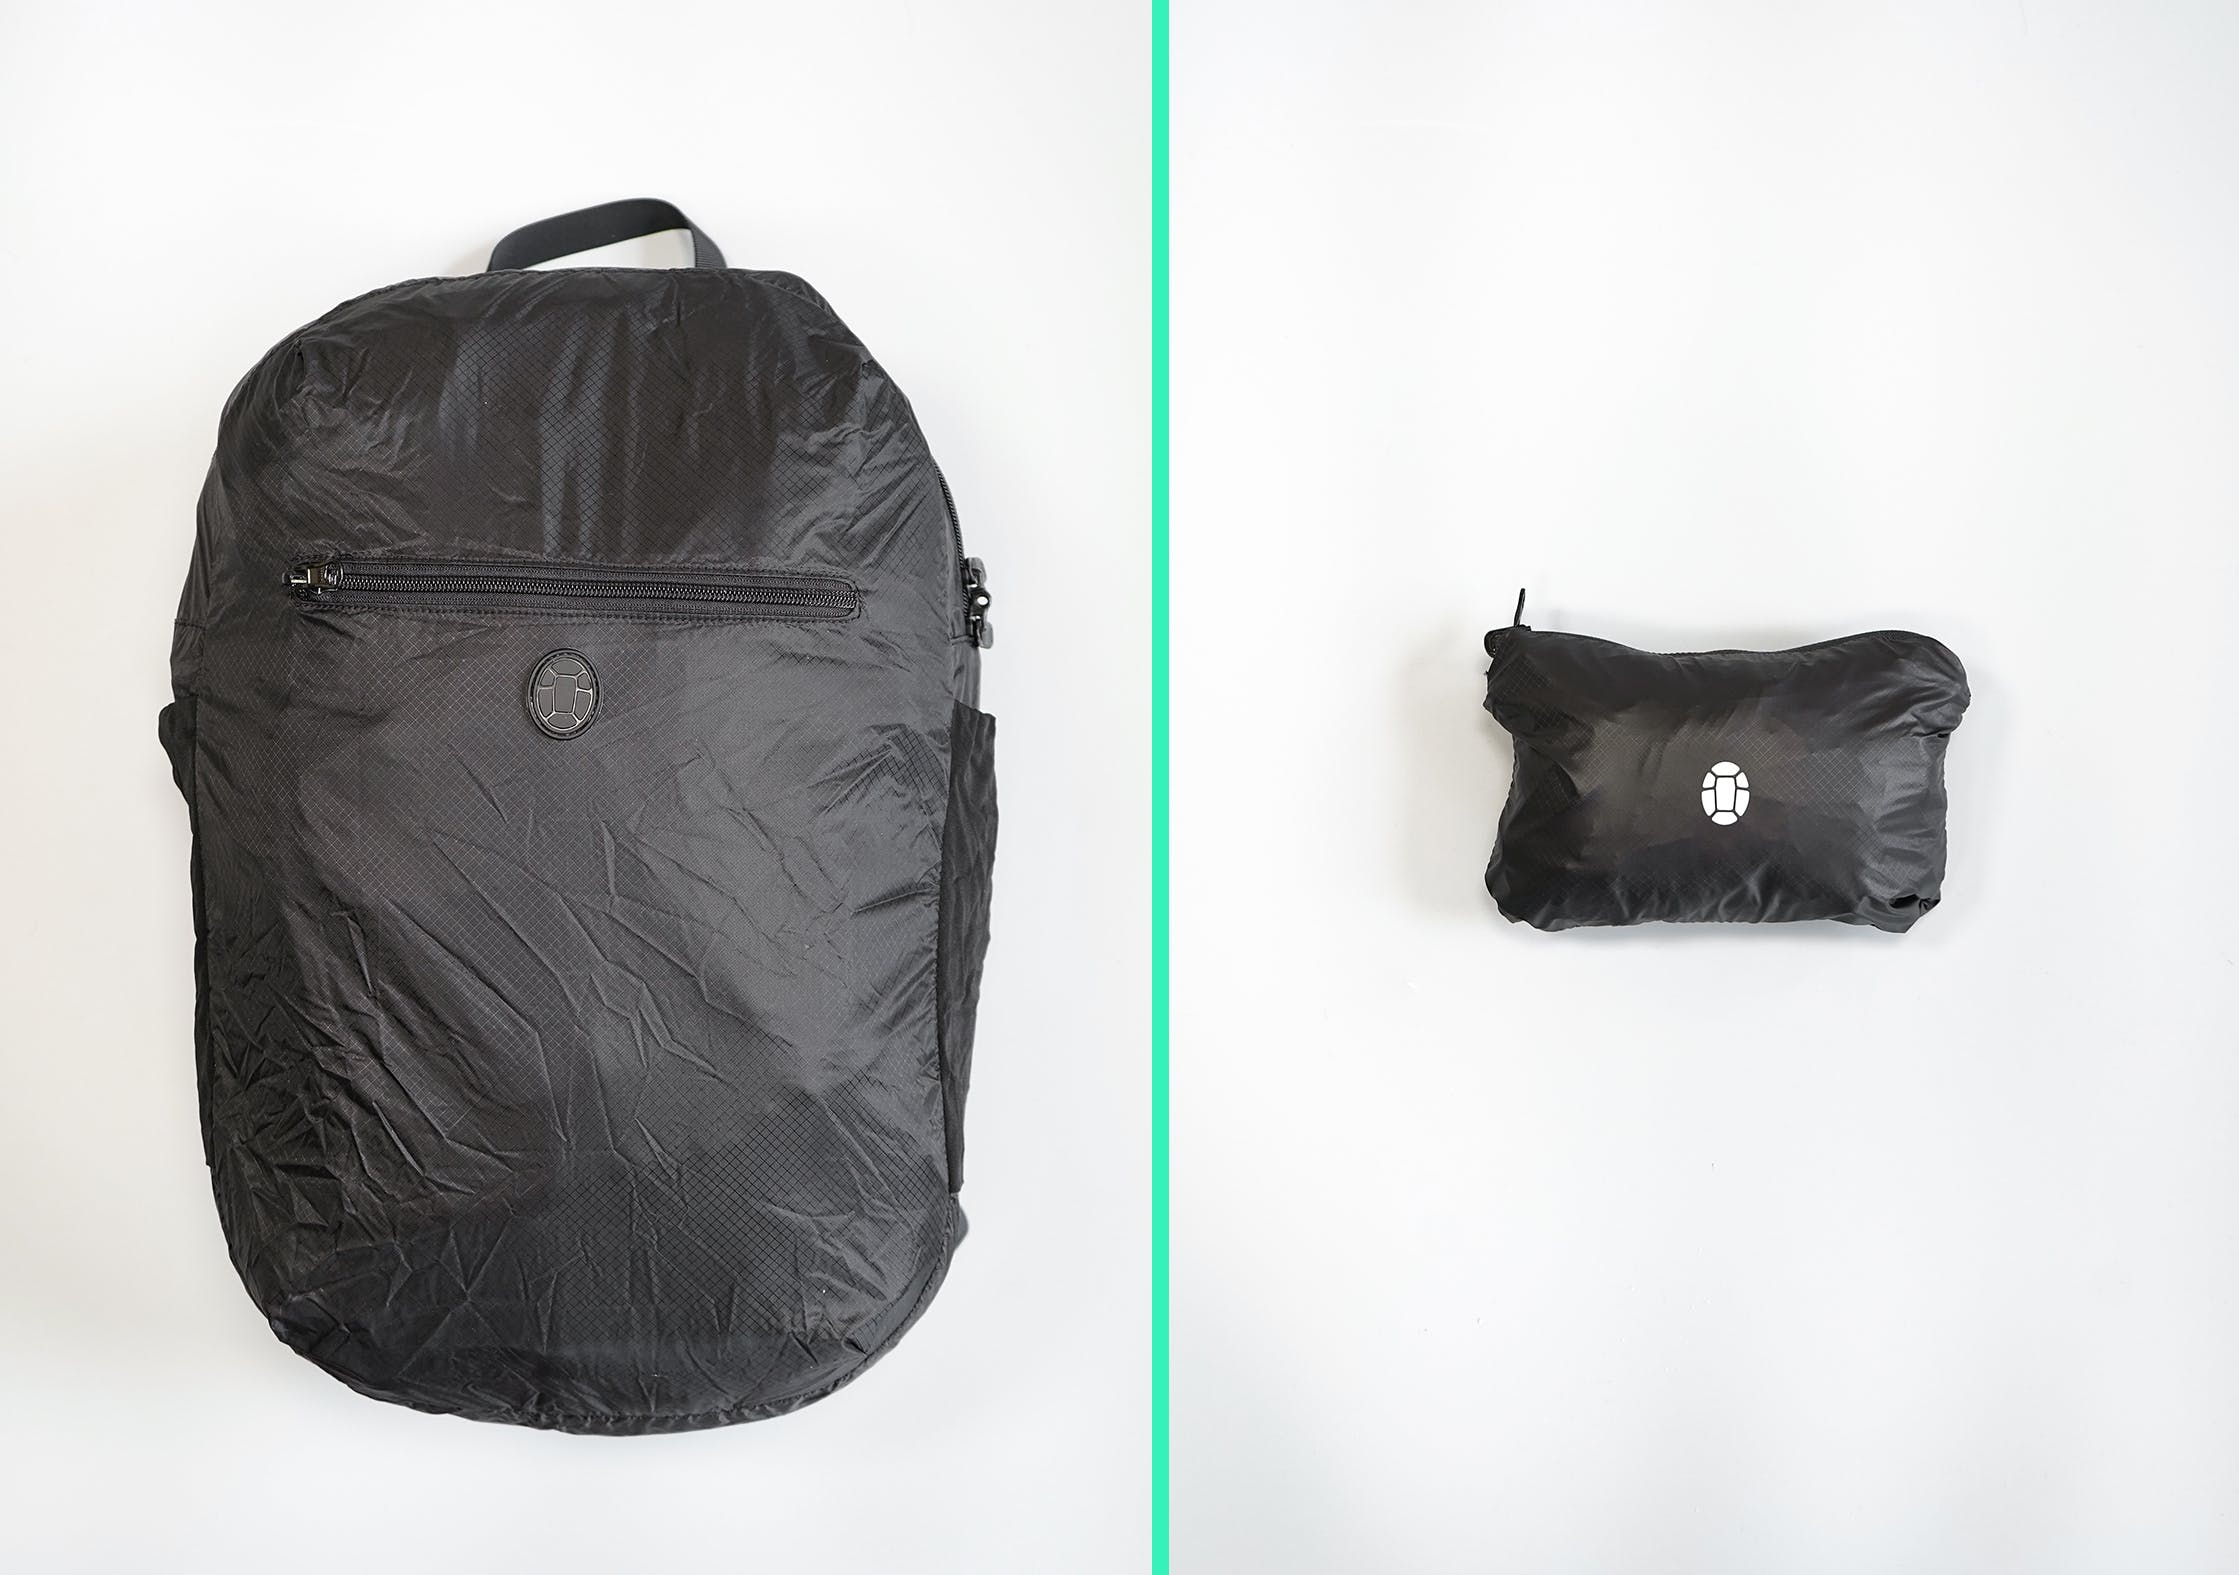 Tortuga Setout Packable Daypack Compressed Size Comparison